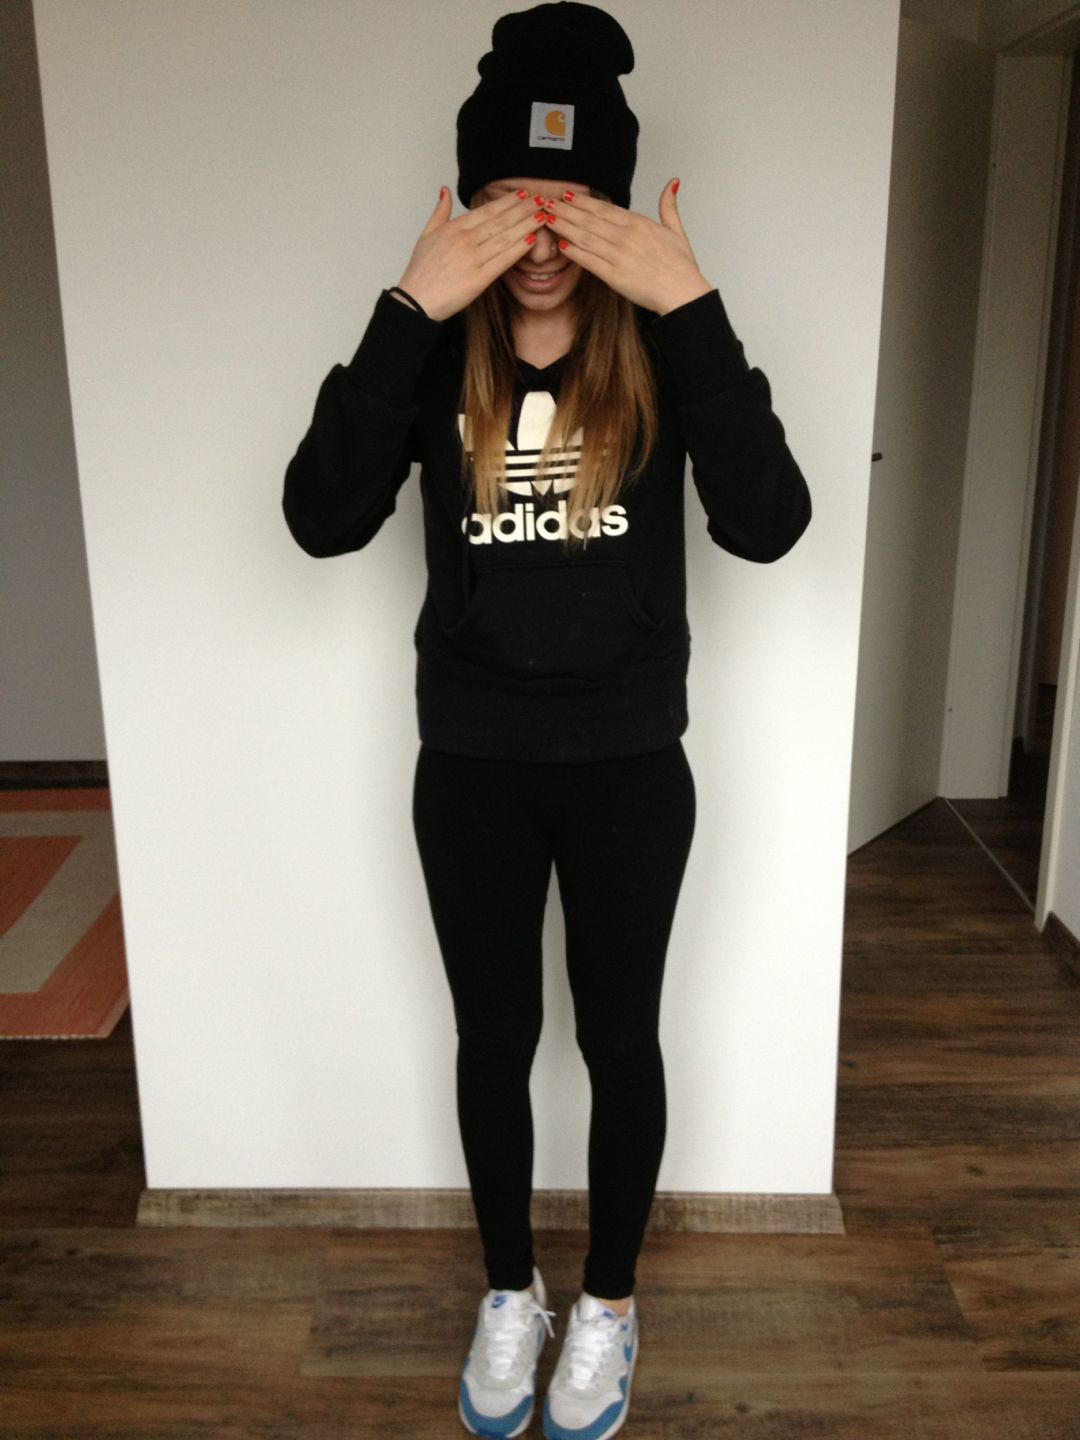 adidas, black, and girl image | Adidas outfit, Clothes, Fashion